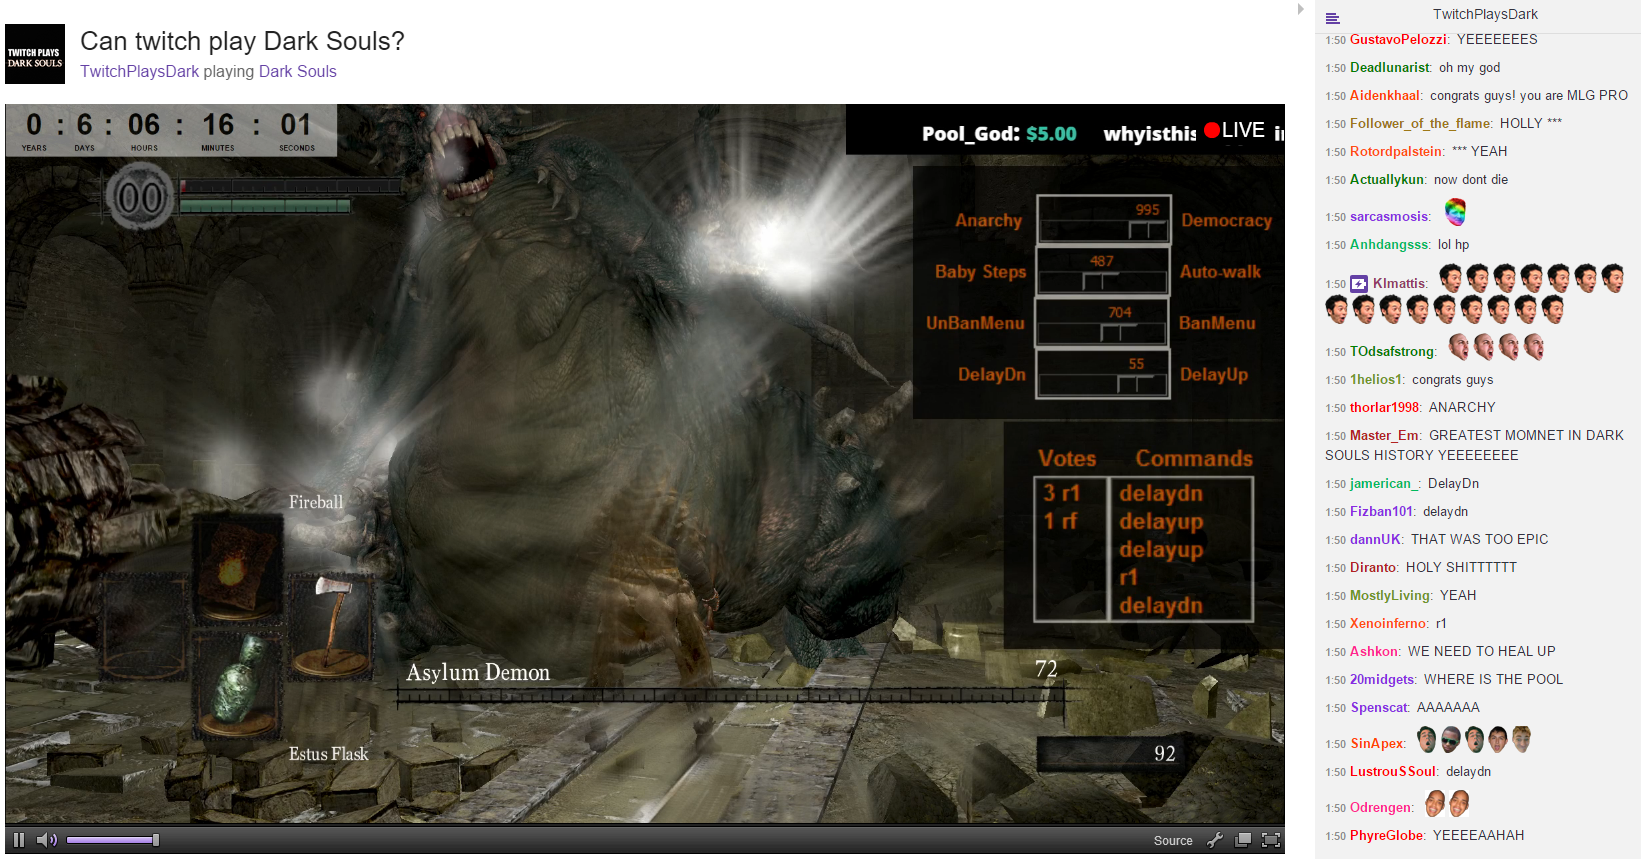 Wow, Twitch vs Dark Souls Just Beat The Asylum Demon